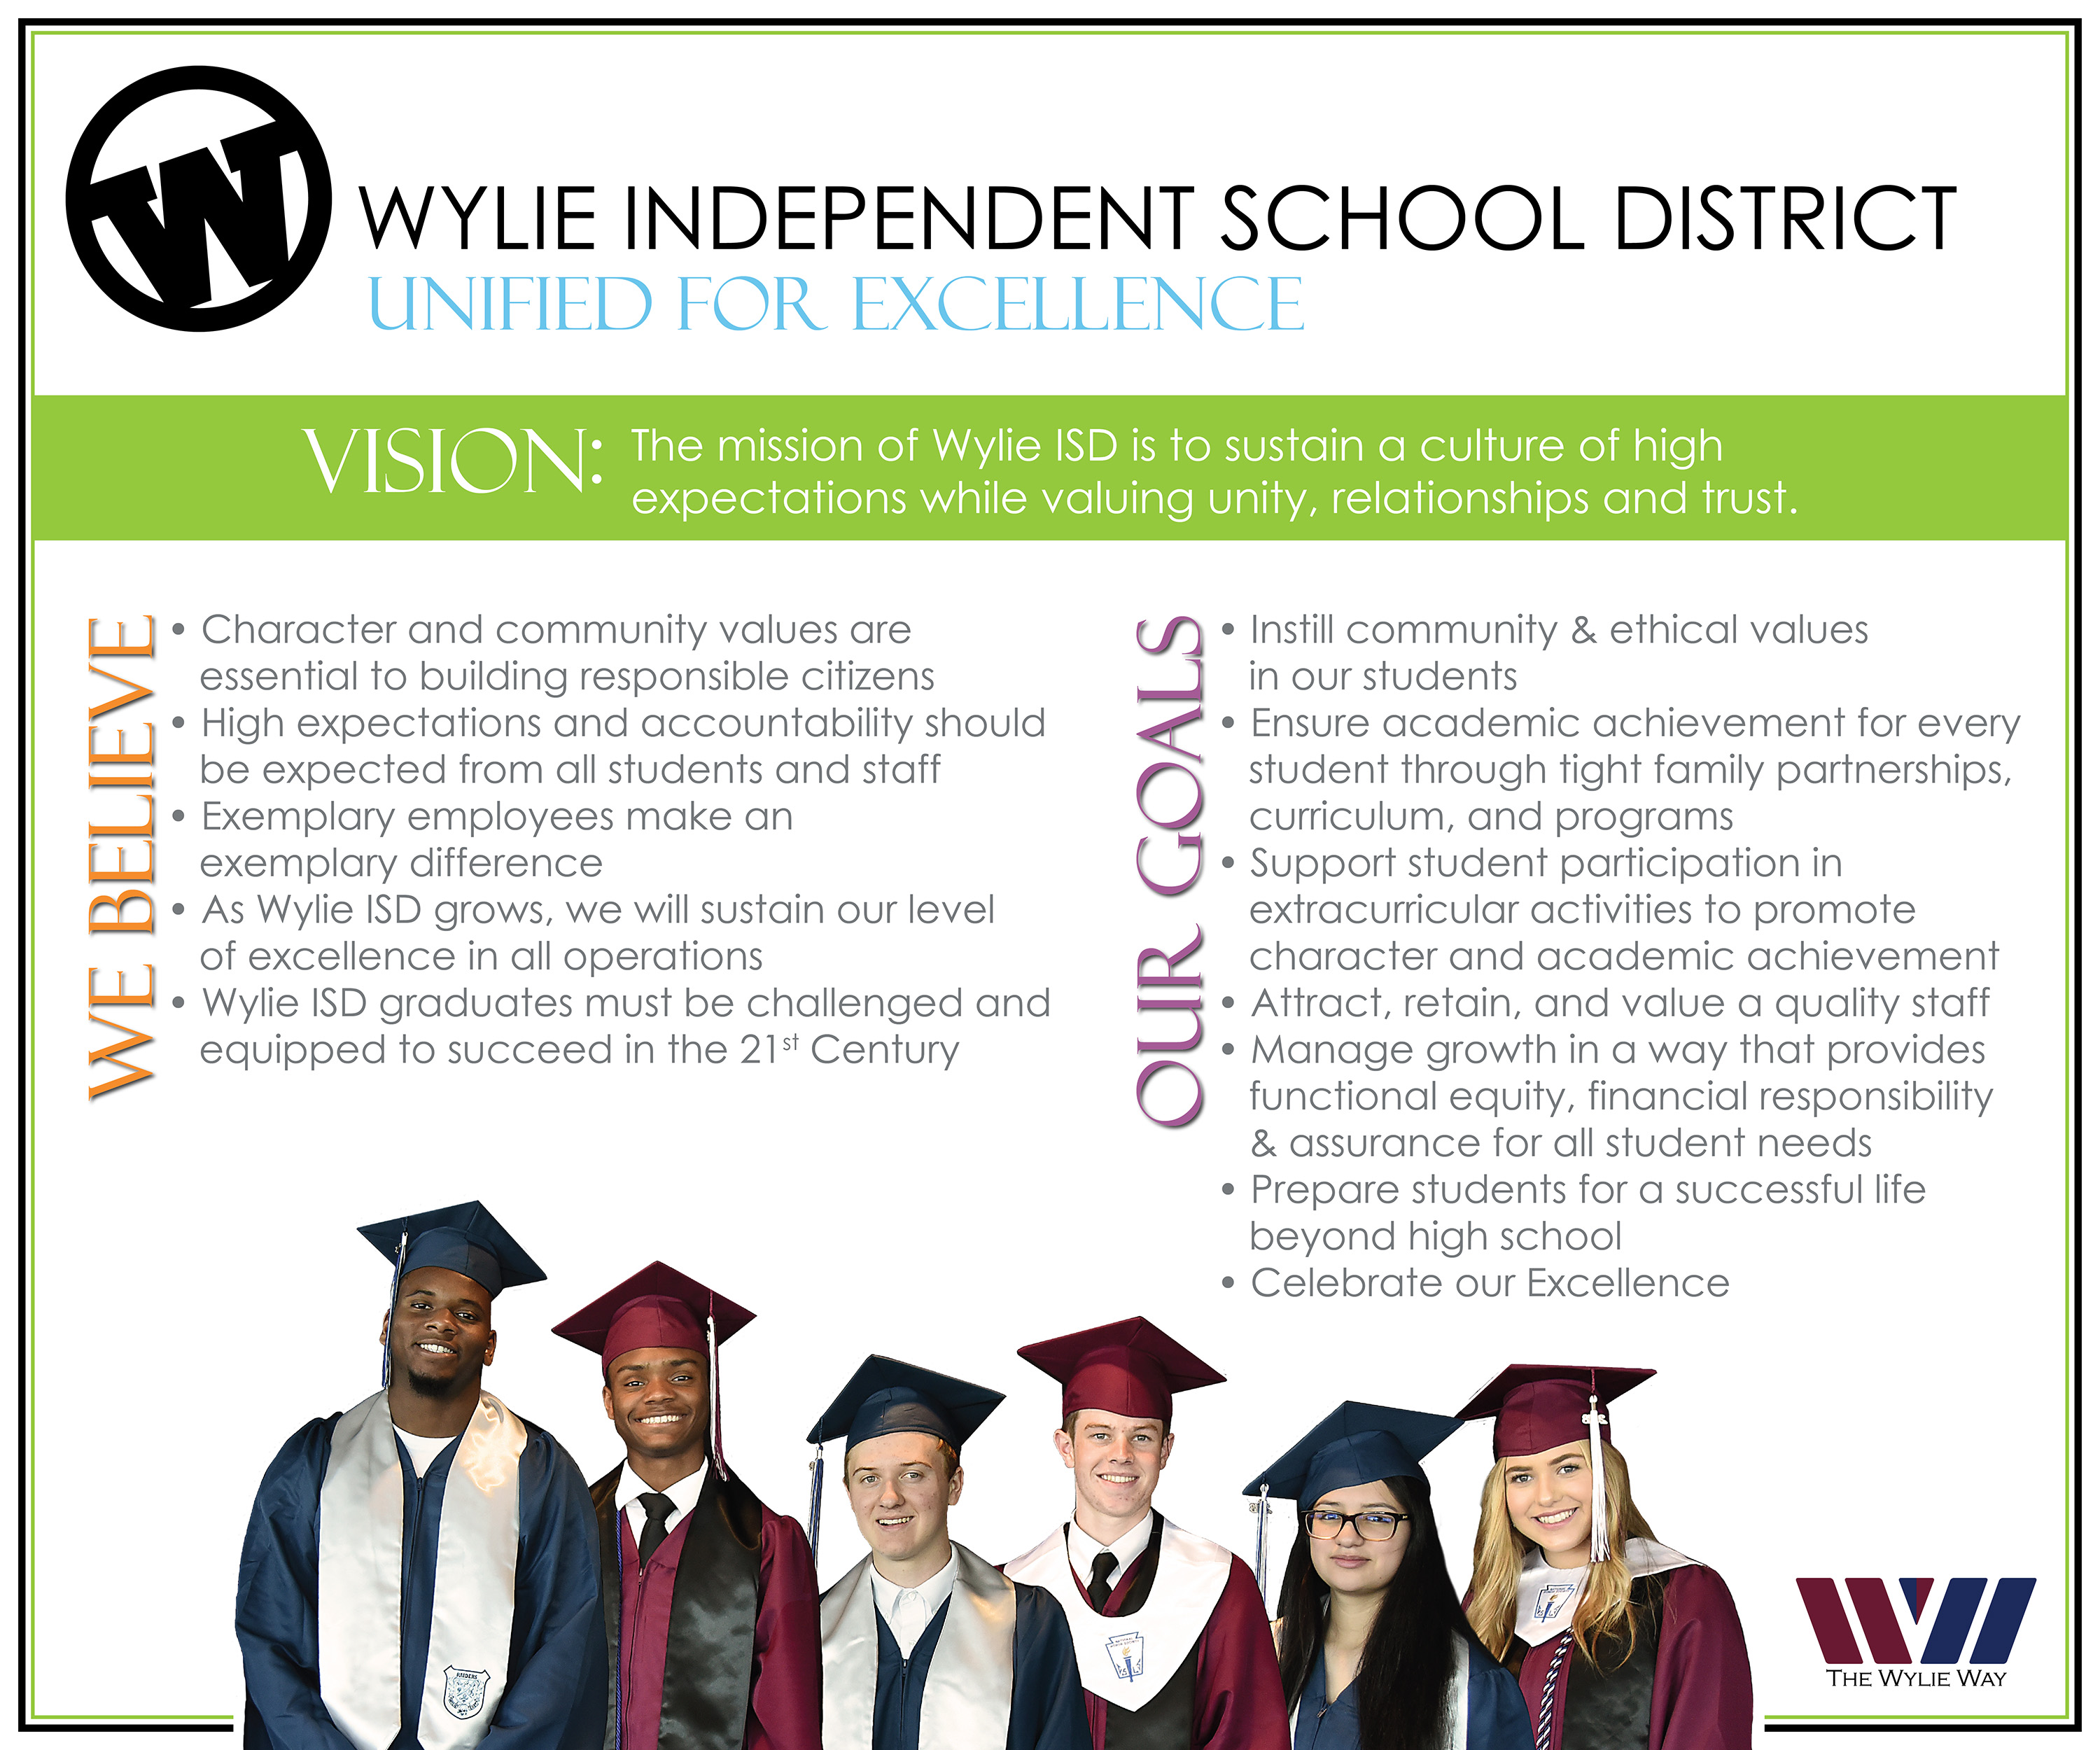 Wylie ISD School Board Mission and Vision